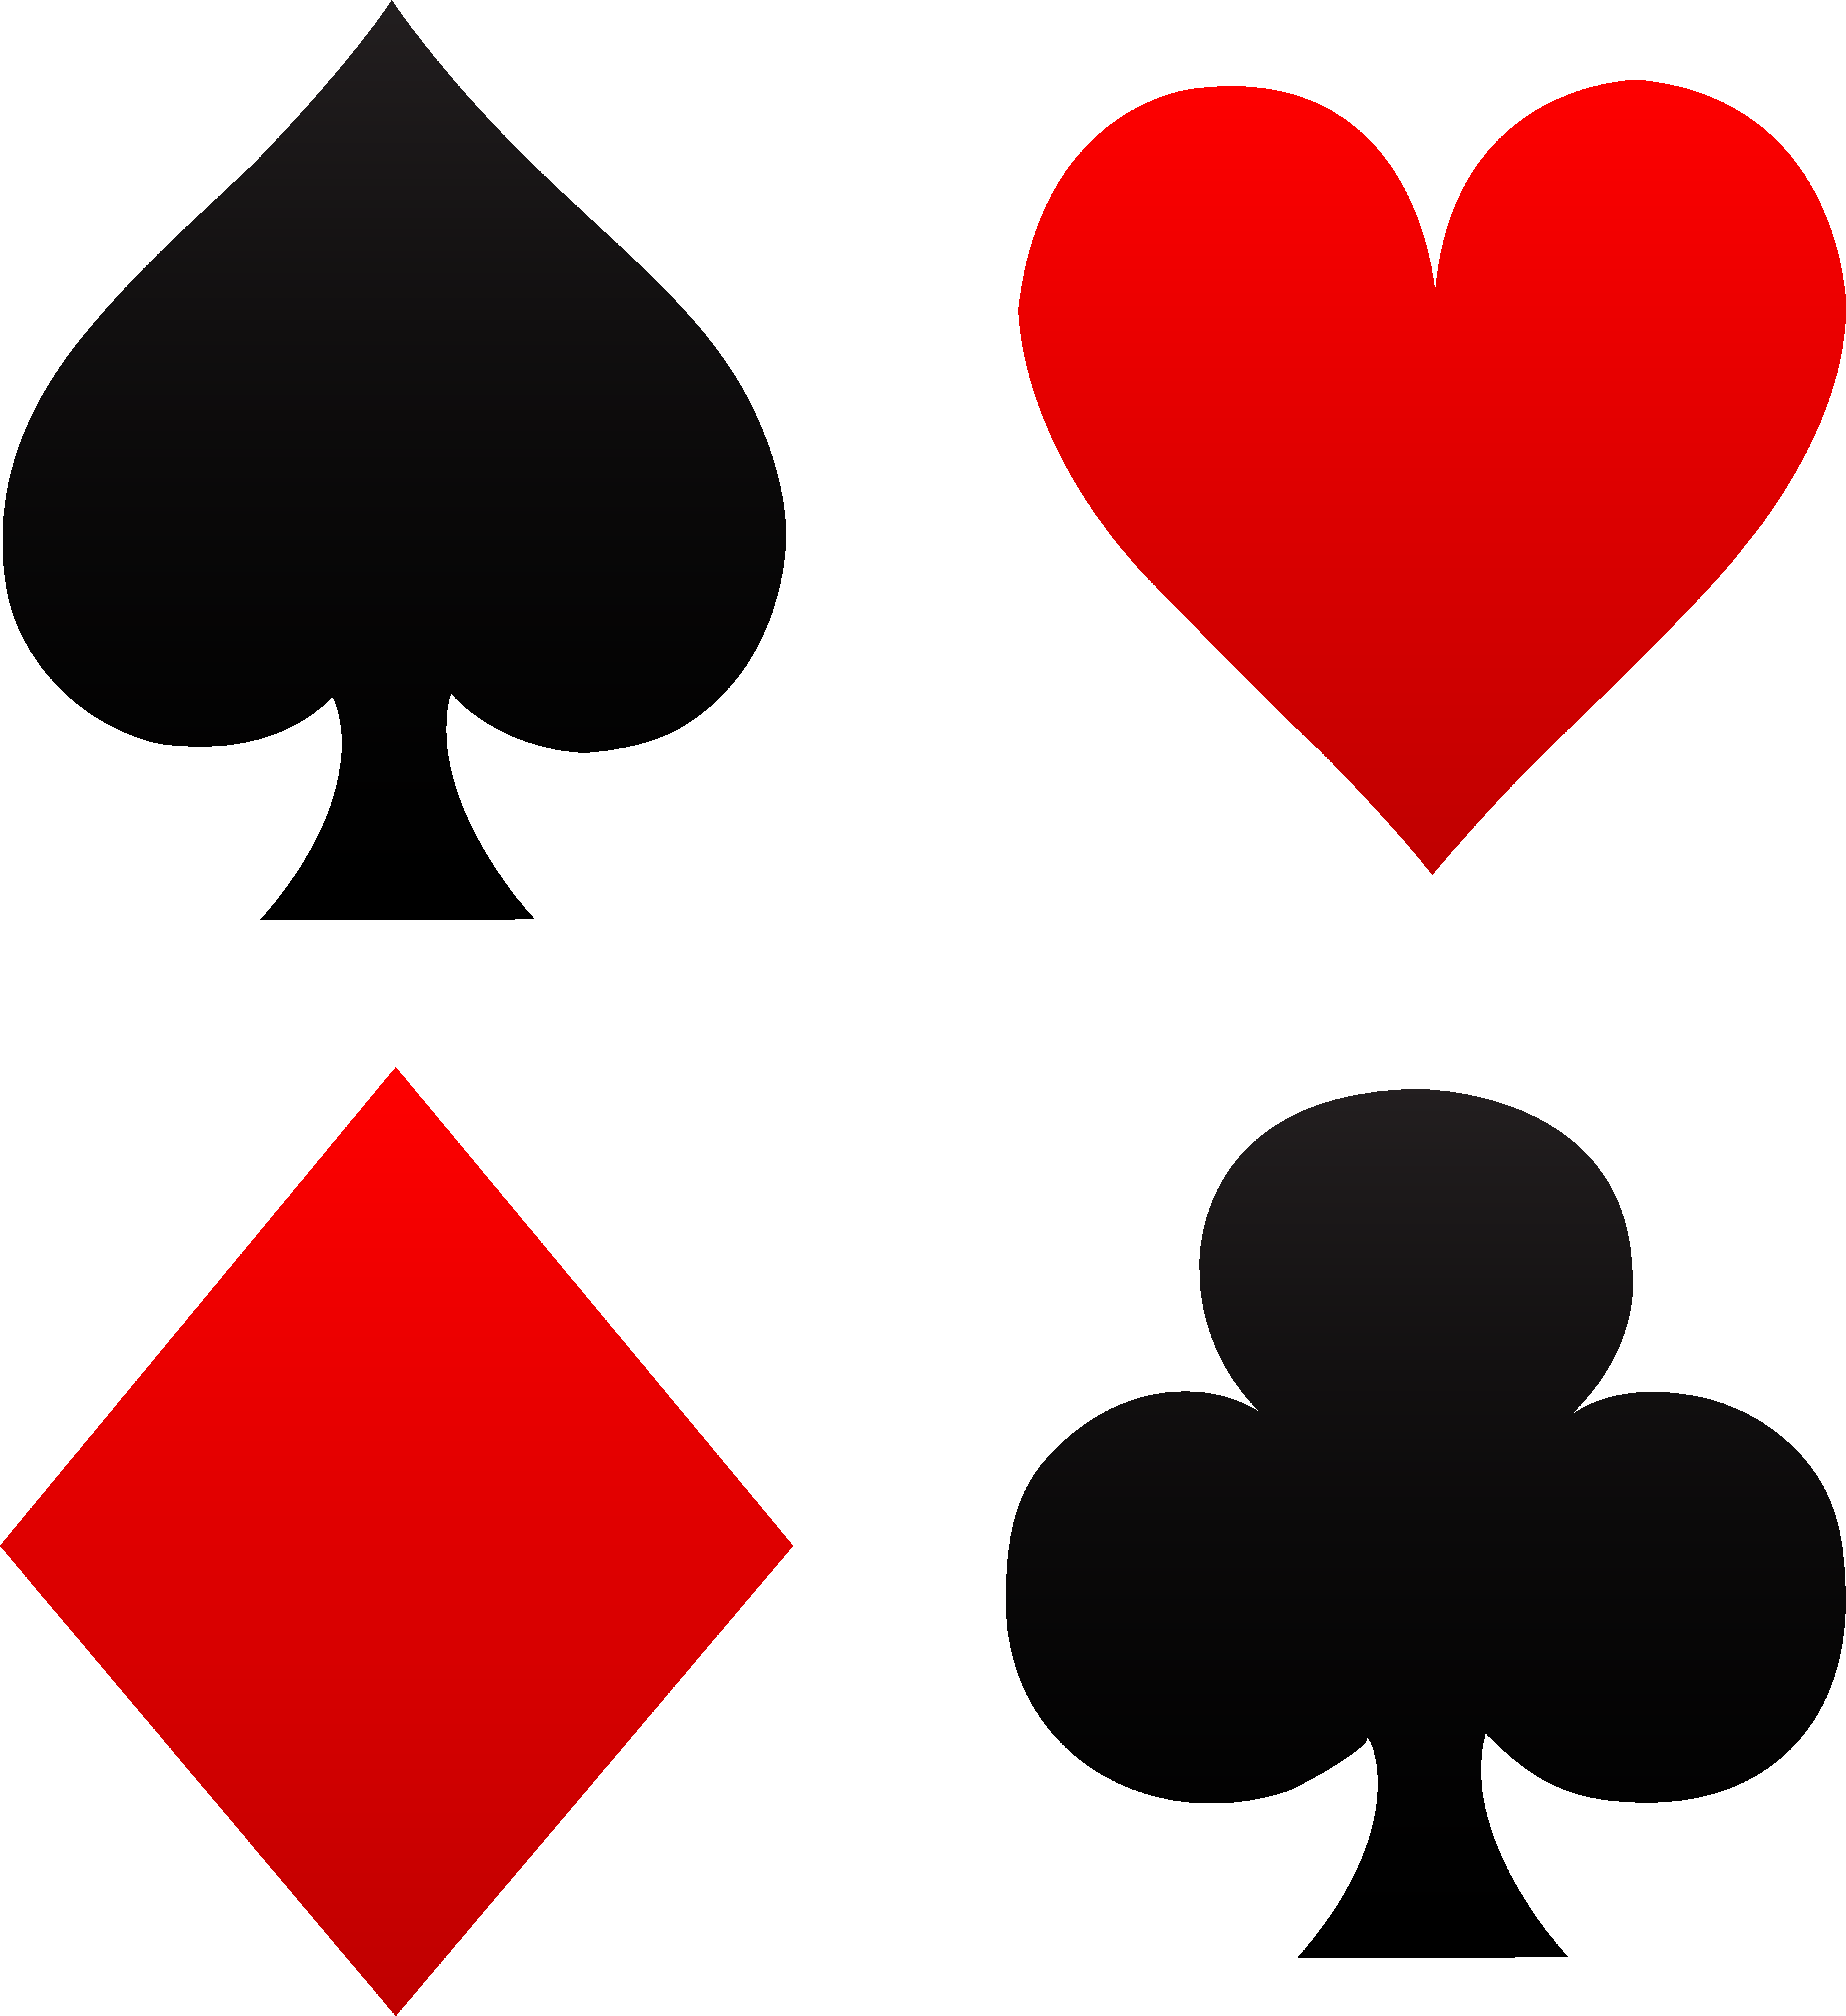 playing card suits clip art sweet clip art rh m sweetclipart com Playing Cards Graphics Playing Cards Graphics